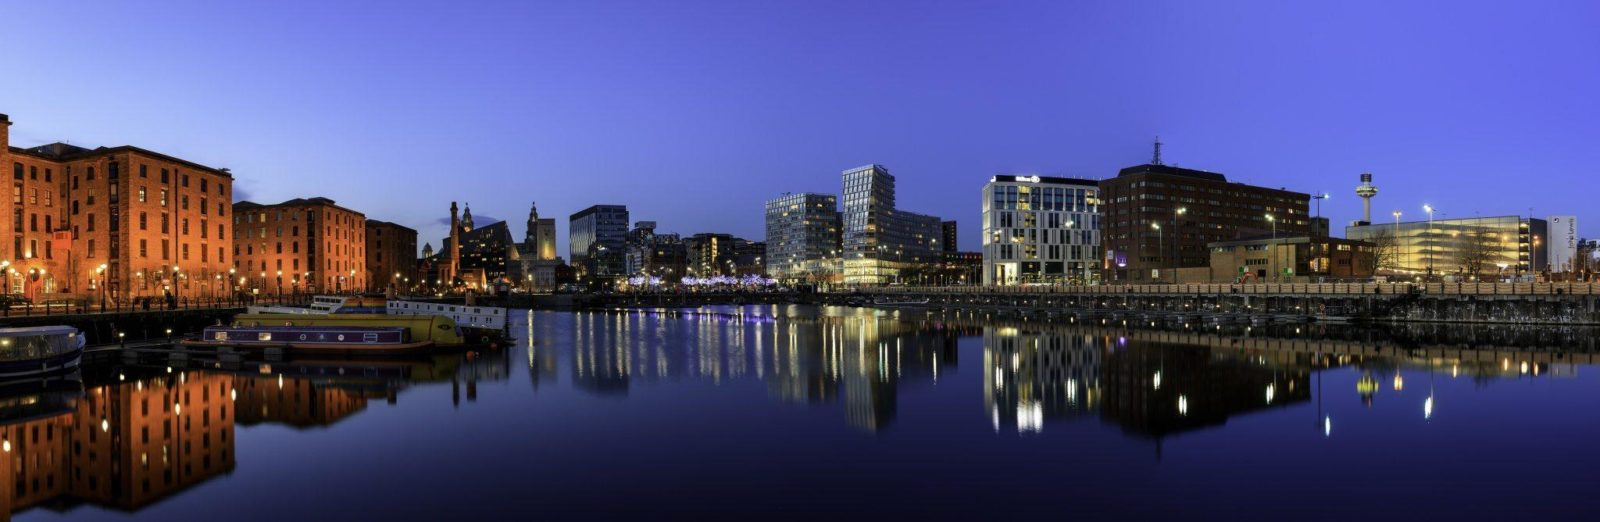 Adventures in Europe | Planning your visit to Liverpool | How to get there and where to stay